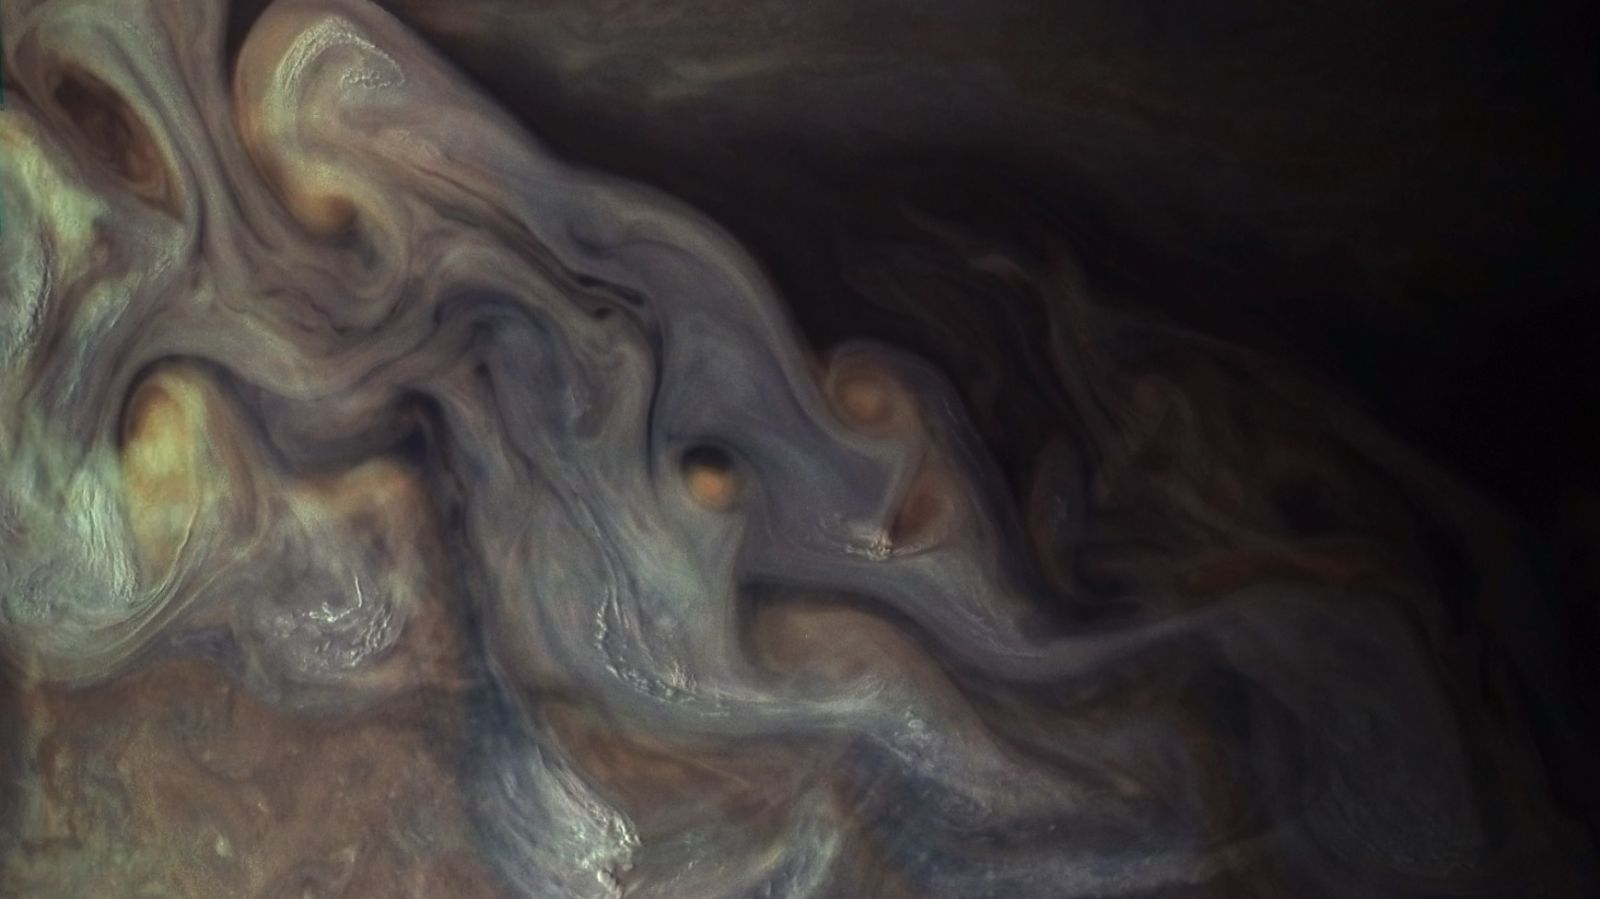 A view of Jupiter's clouds from the Juno spacecraft orbiting the gas giant. Photo Credit: NASA